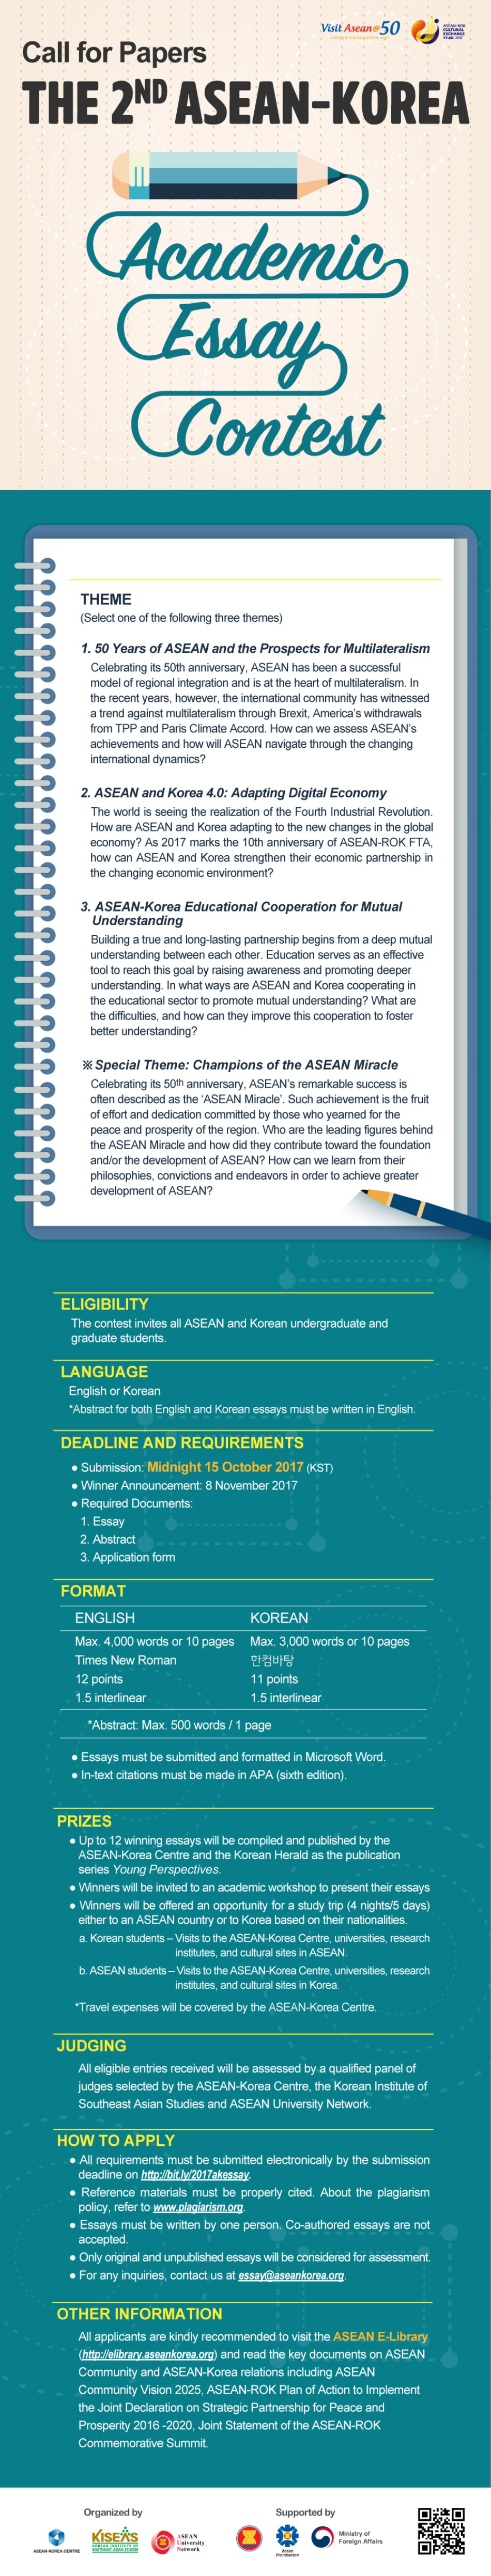 asean korea centre the nd asean korea academic essay contest submit your essay here application form